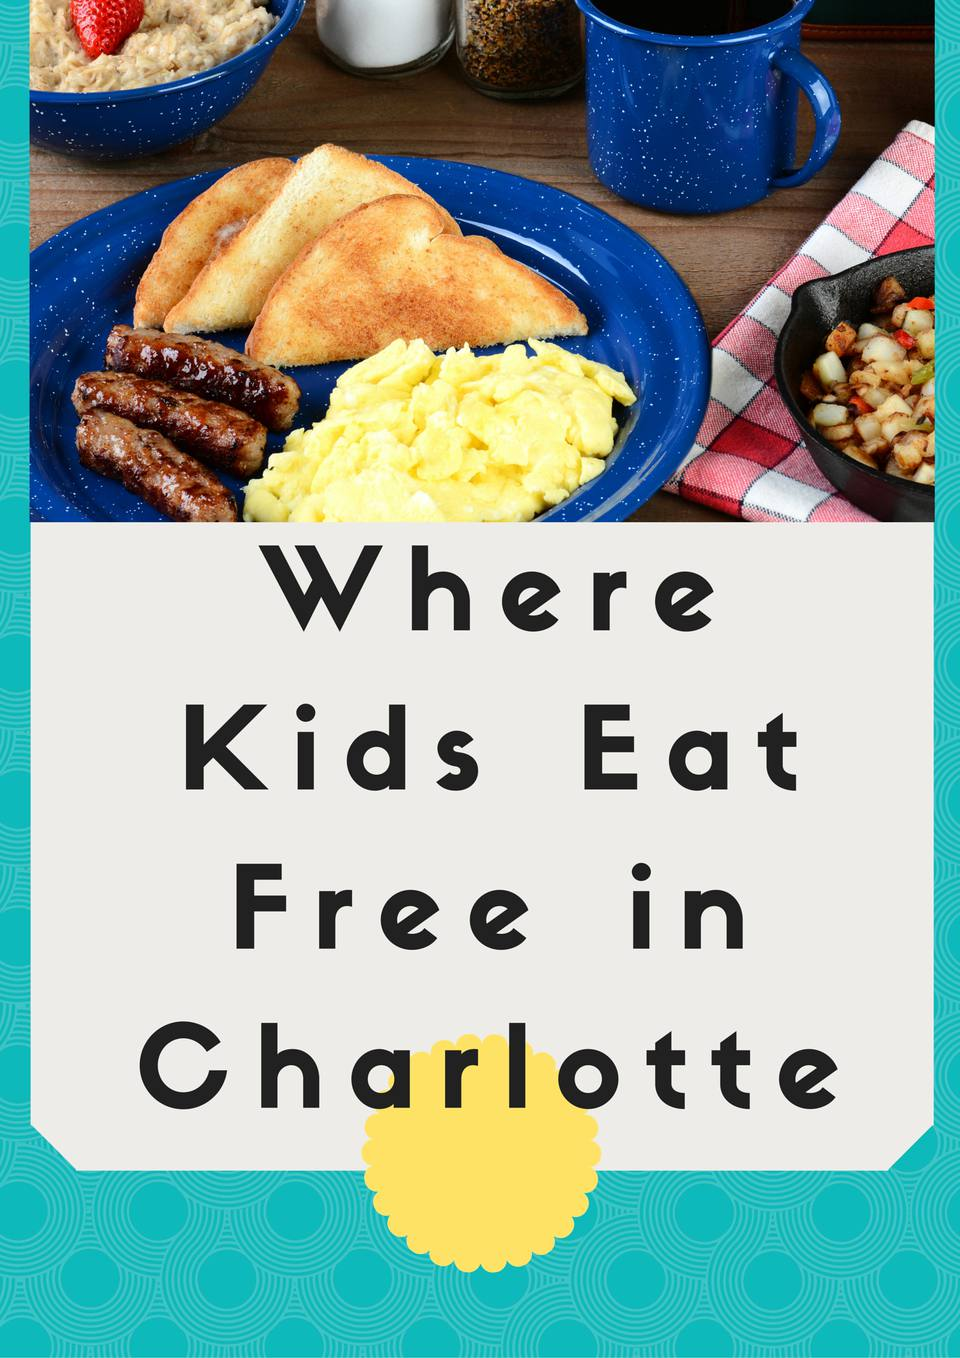 Where Kids Eat Free in Charlotte graphic